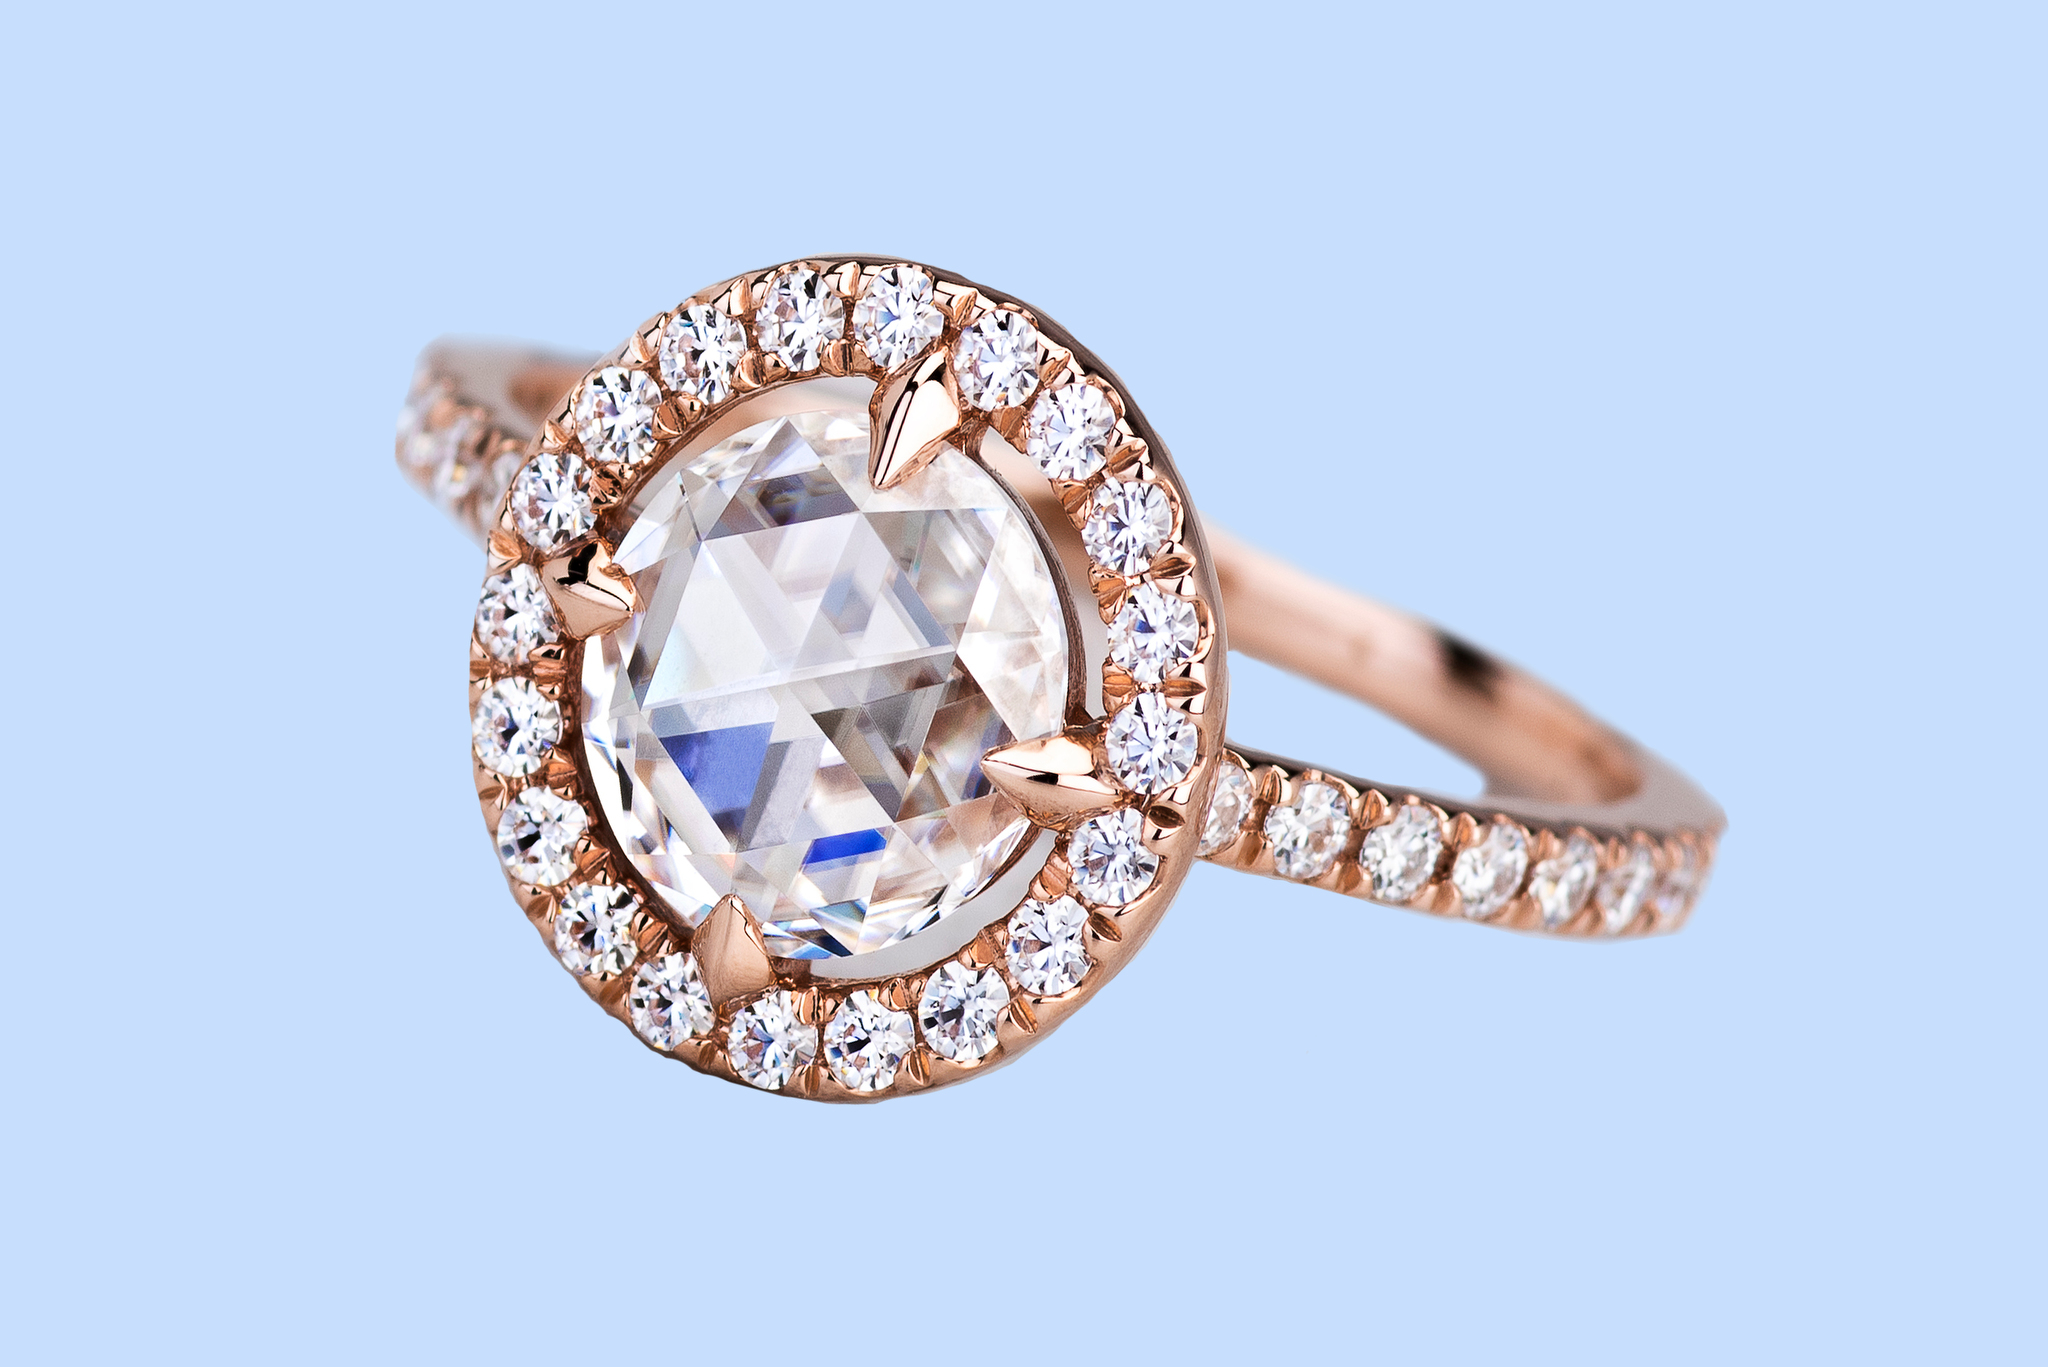 A ring with Duet Rose moissanite center stone. Charles & Colvard will unveil the new cut at the JCK Las Vegas show later this month.